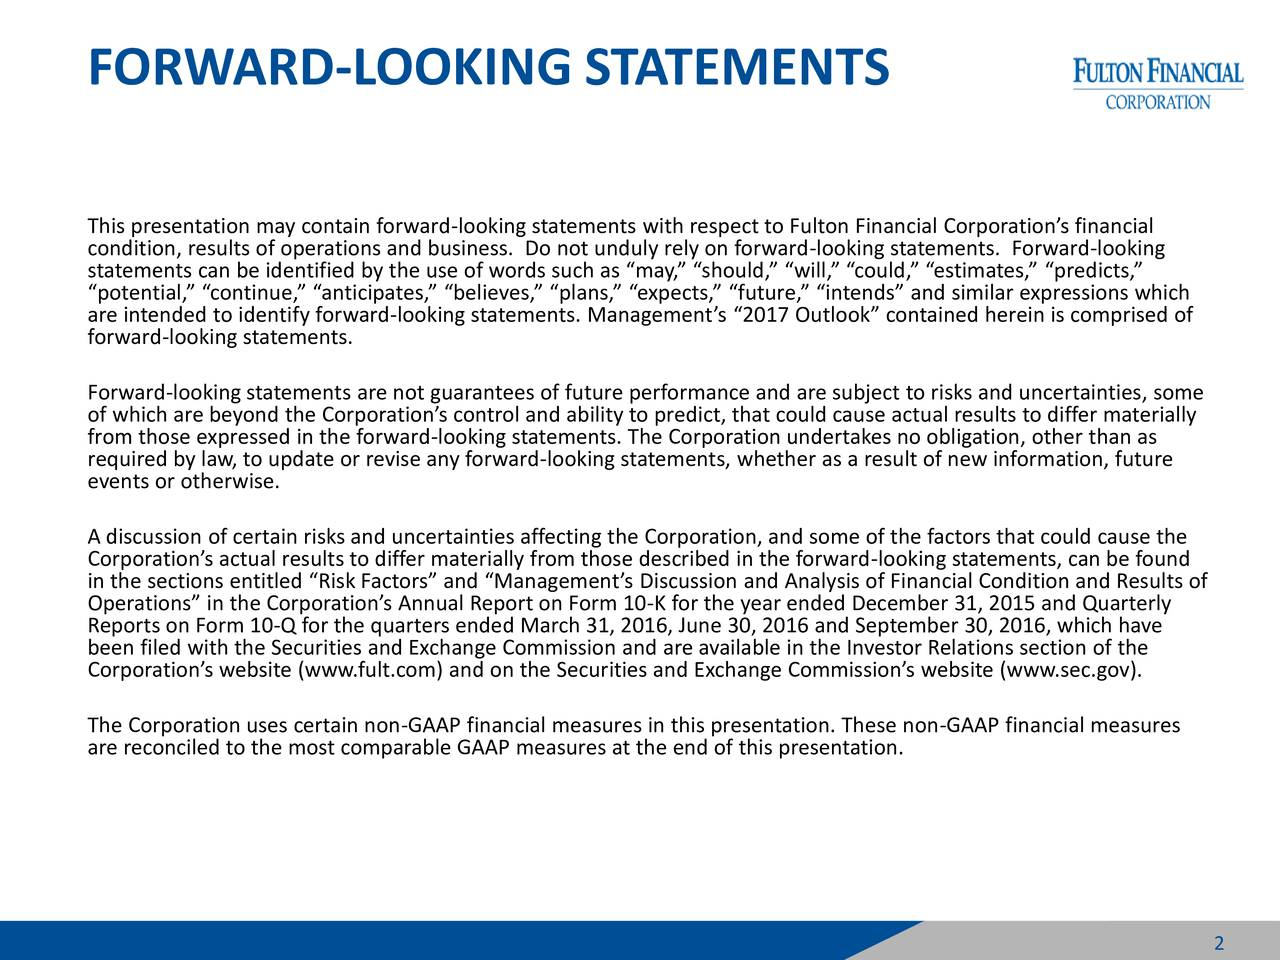 This presentation may contain forward-looking statements with respect to Fulton Financial Corporations financial condition, results of operations and business. Do not unduly rely on forward-looking statements. Forward-looking statements can be identified by the use of words such as may, should, will, could, estimates, predicts, potential, continue, anticipates, believes, plans, expects, future, intends and similar expressions which are intended to identify forward-looking statements. Managements 2017 Outlook contained herein is comprised of forward-looking statements. Forward-looking statements are not guarantees of future performance and are subject to risks and uncertainties, some of which are beyond the Corporations control and ability to predict, that could cause actual results to differ materially from those expressed in the forward-looking statements. The Corporation undertakes no obligation, other than as required by law, to update or revise any forward-looking statements, whether as a result of new information, future events or otherwise. A discussion of certain risks and uncertainties affecting the Corporation, and some of the factors that could cause the Corporations actual results to differ materially from those described in the forward-looking statements, can be found in the sections entitled Risk Factors and Managements Discussion and Analysis of Financial Condition and Results of Operations in the Corporations Annual Report on Form 10-K for the year ended December 31, 2015 and Quarterly Reports on Form 10-Q for the quarters ended March 31, 2016, June 30, 2016 and September 30, 2016, which have been filed with the Securities and Exchange Commission and are available in the Investor Relations section of the Corporations website (www.fult.com) and on the Securities and Exchange Commissions website (www.sec.gov). The Corporation uses certain non-GAAP financial measures in this presentation. These non-GAAP financial measures are reconciled to the most comparable GAAP measures at the end of this presentation.